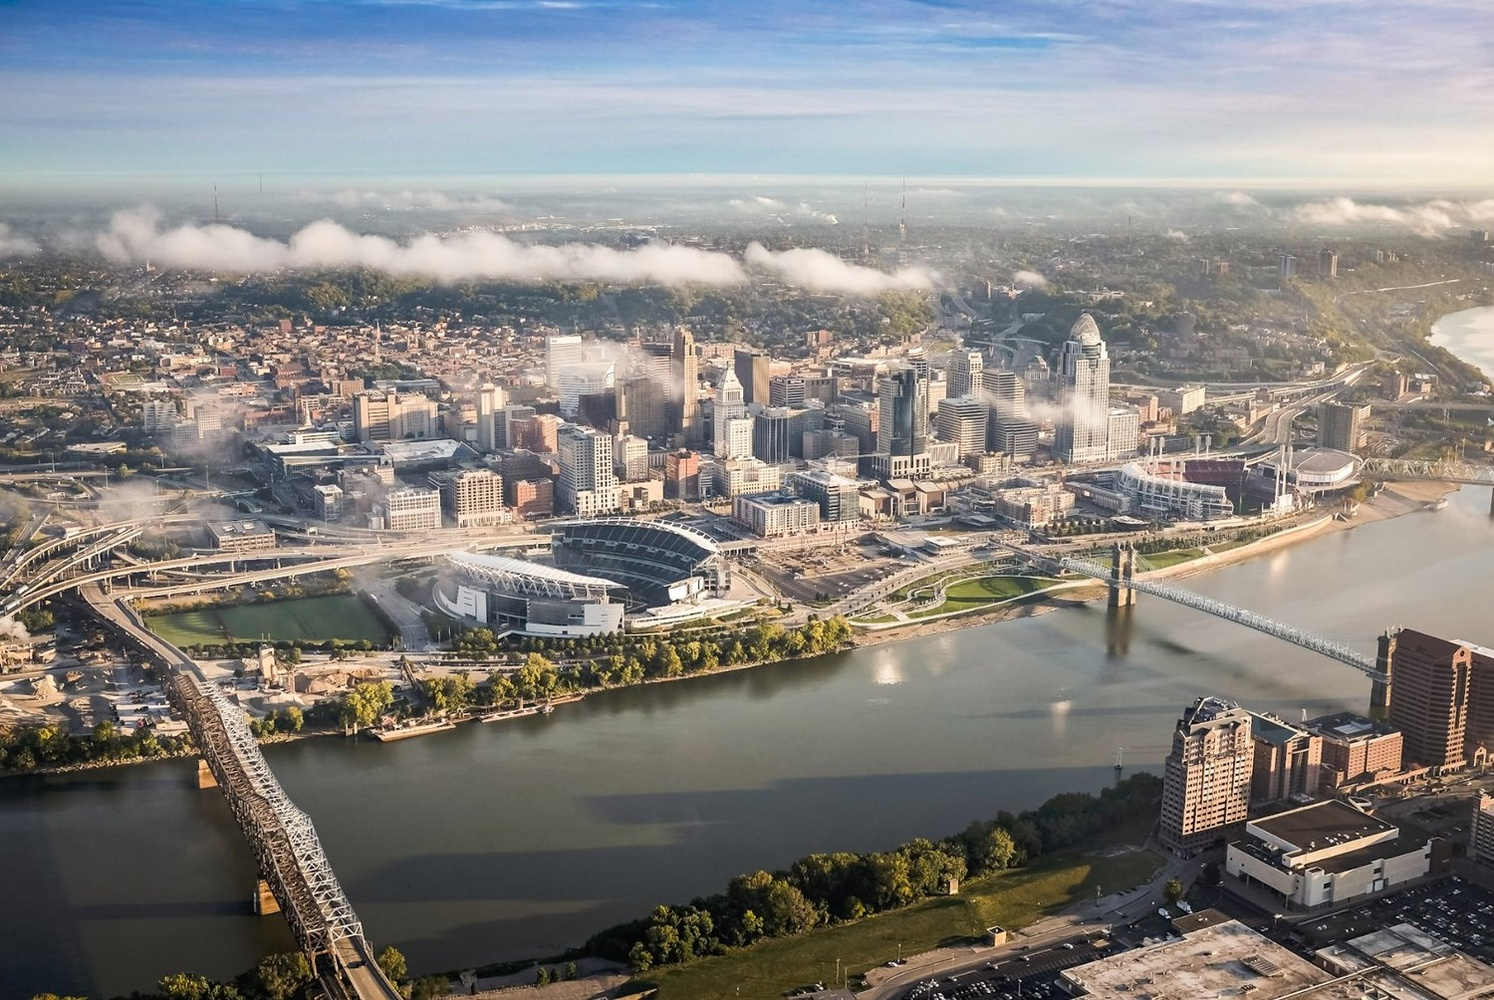 Aerial Photo of the Riverfront in Cincinnati, Ohio by Rick Lohre